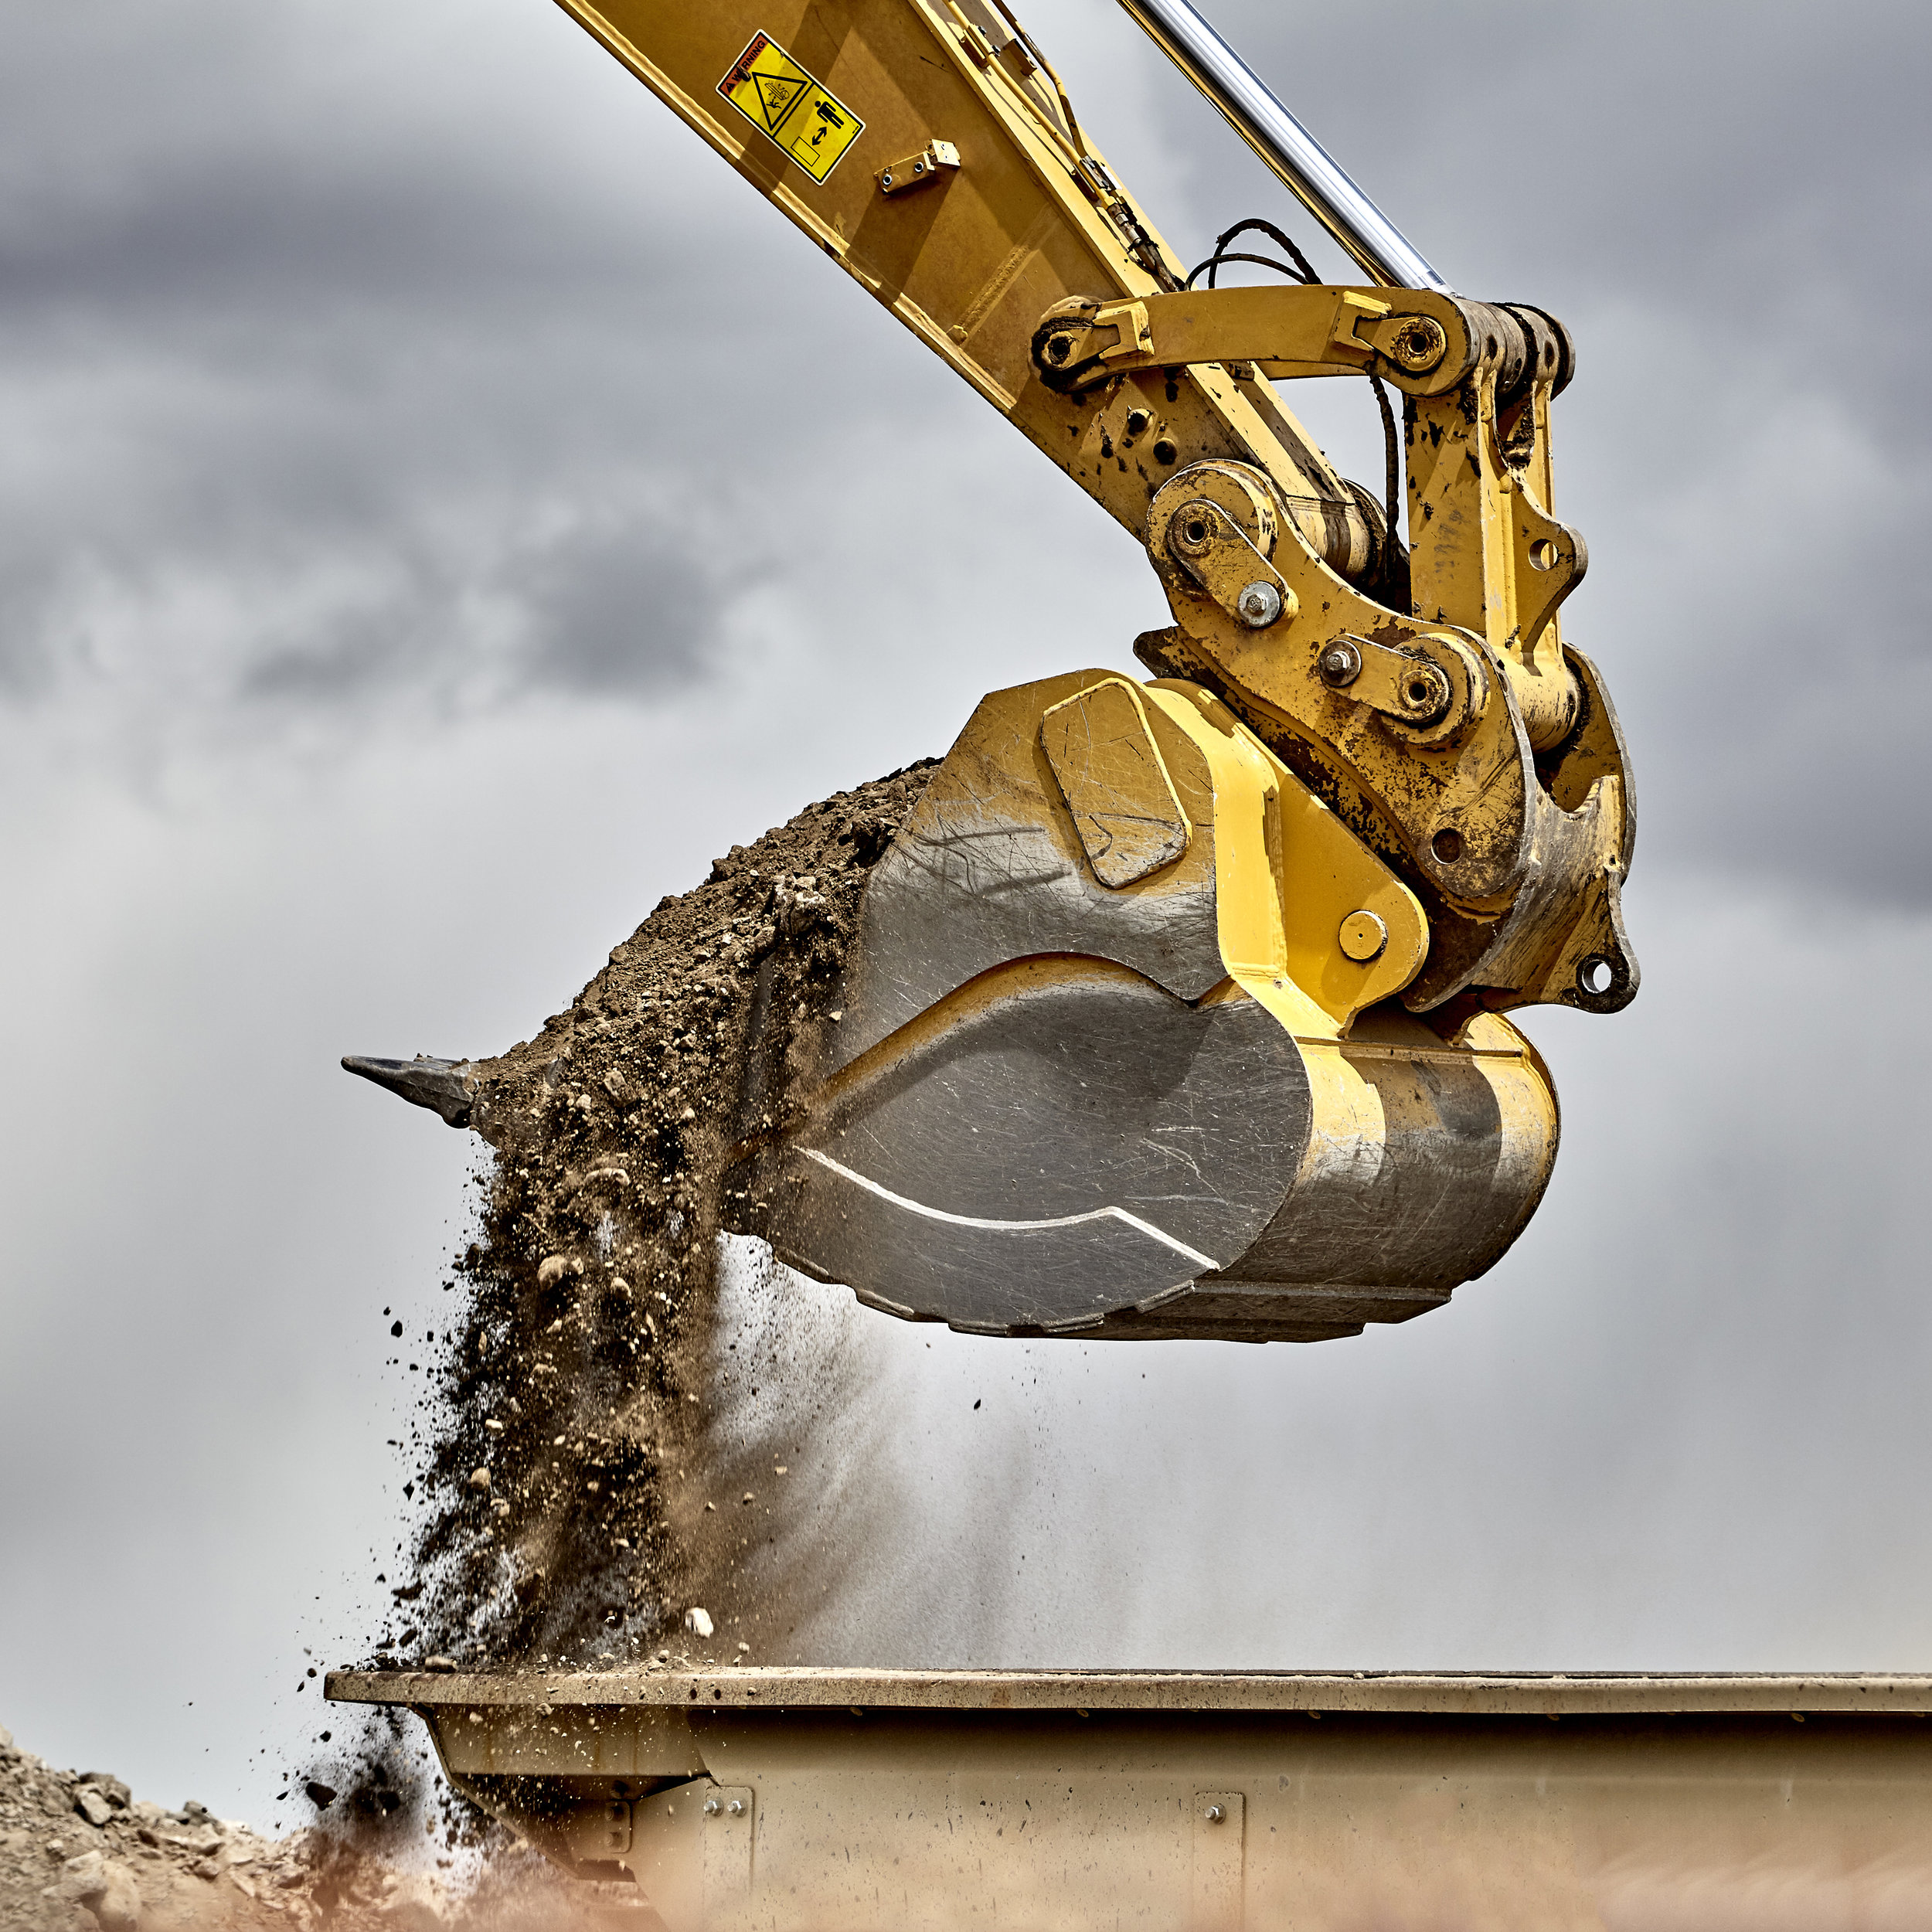 Excavation & Site Preparation   From excavation to grading to backfilling, we will make sure that your lot is optimally prepared for building. We consider all elements when preparing a building site, to ensure that your dream home is built properly right from the start.    LEARN MORE